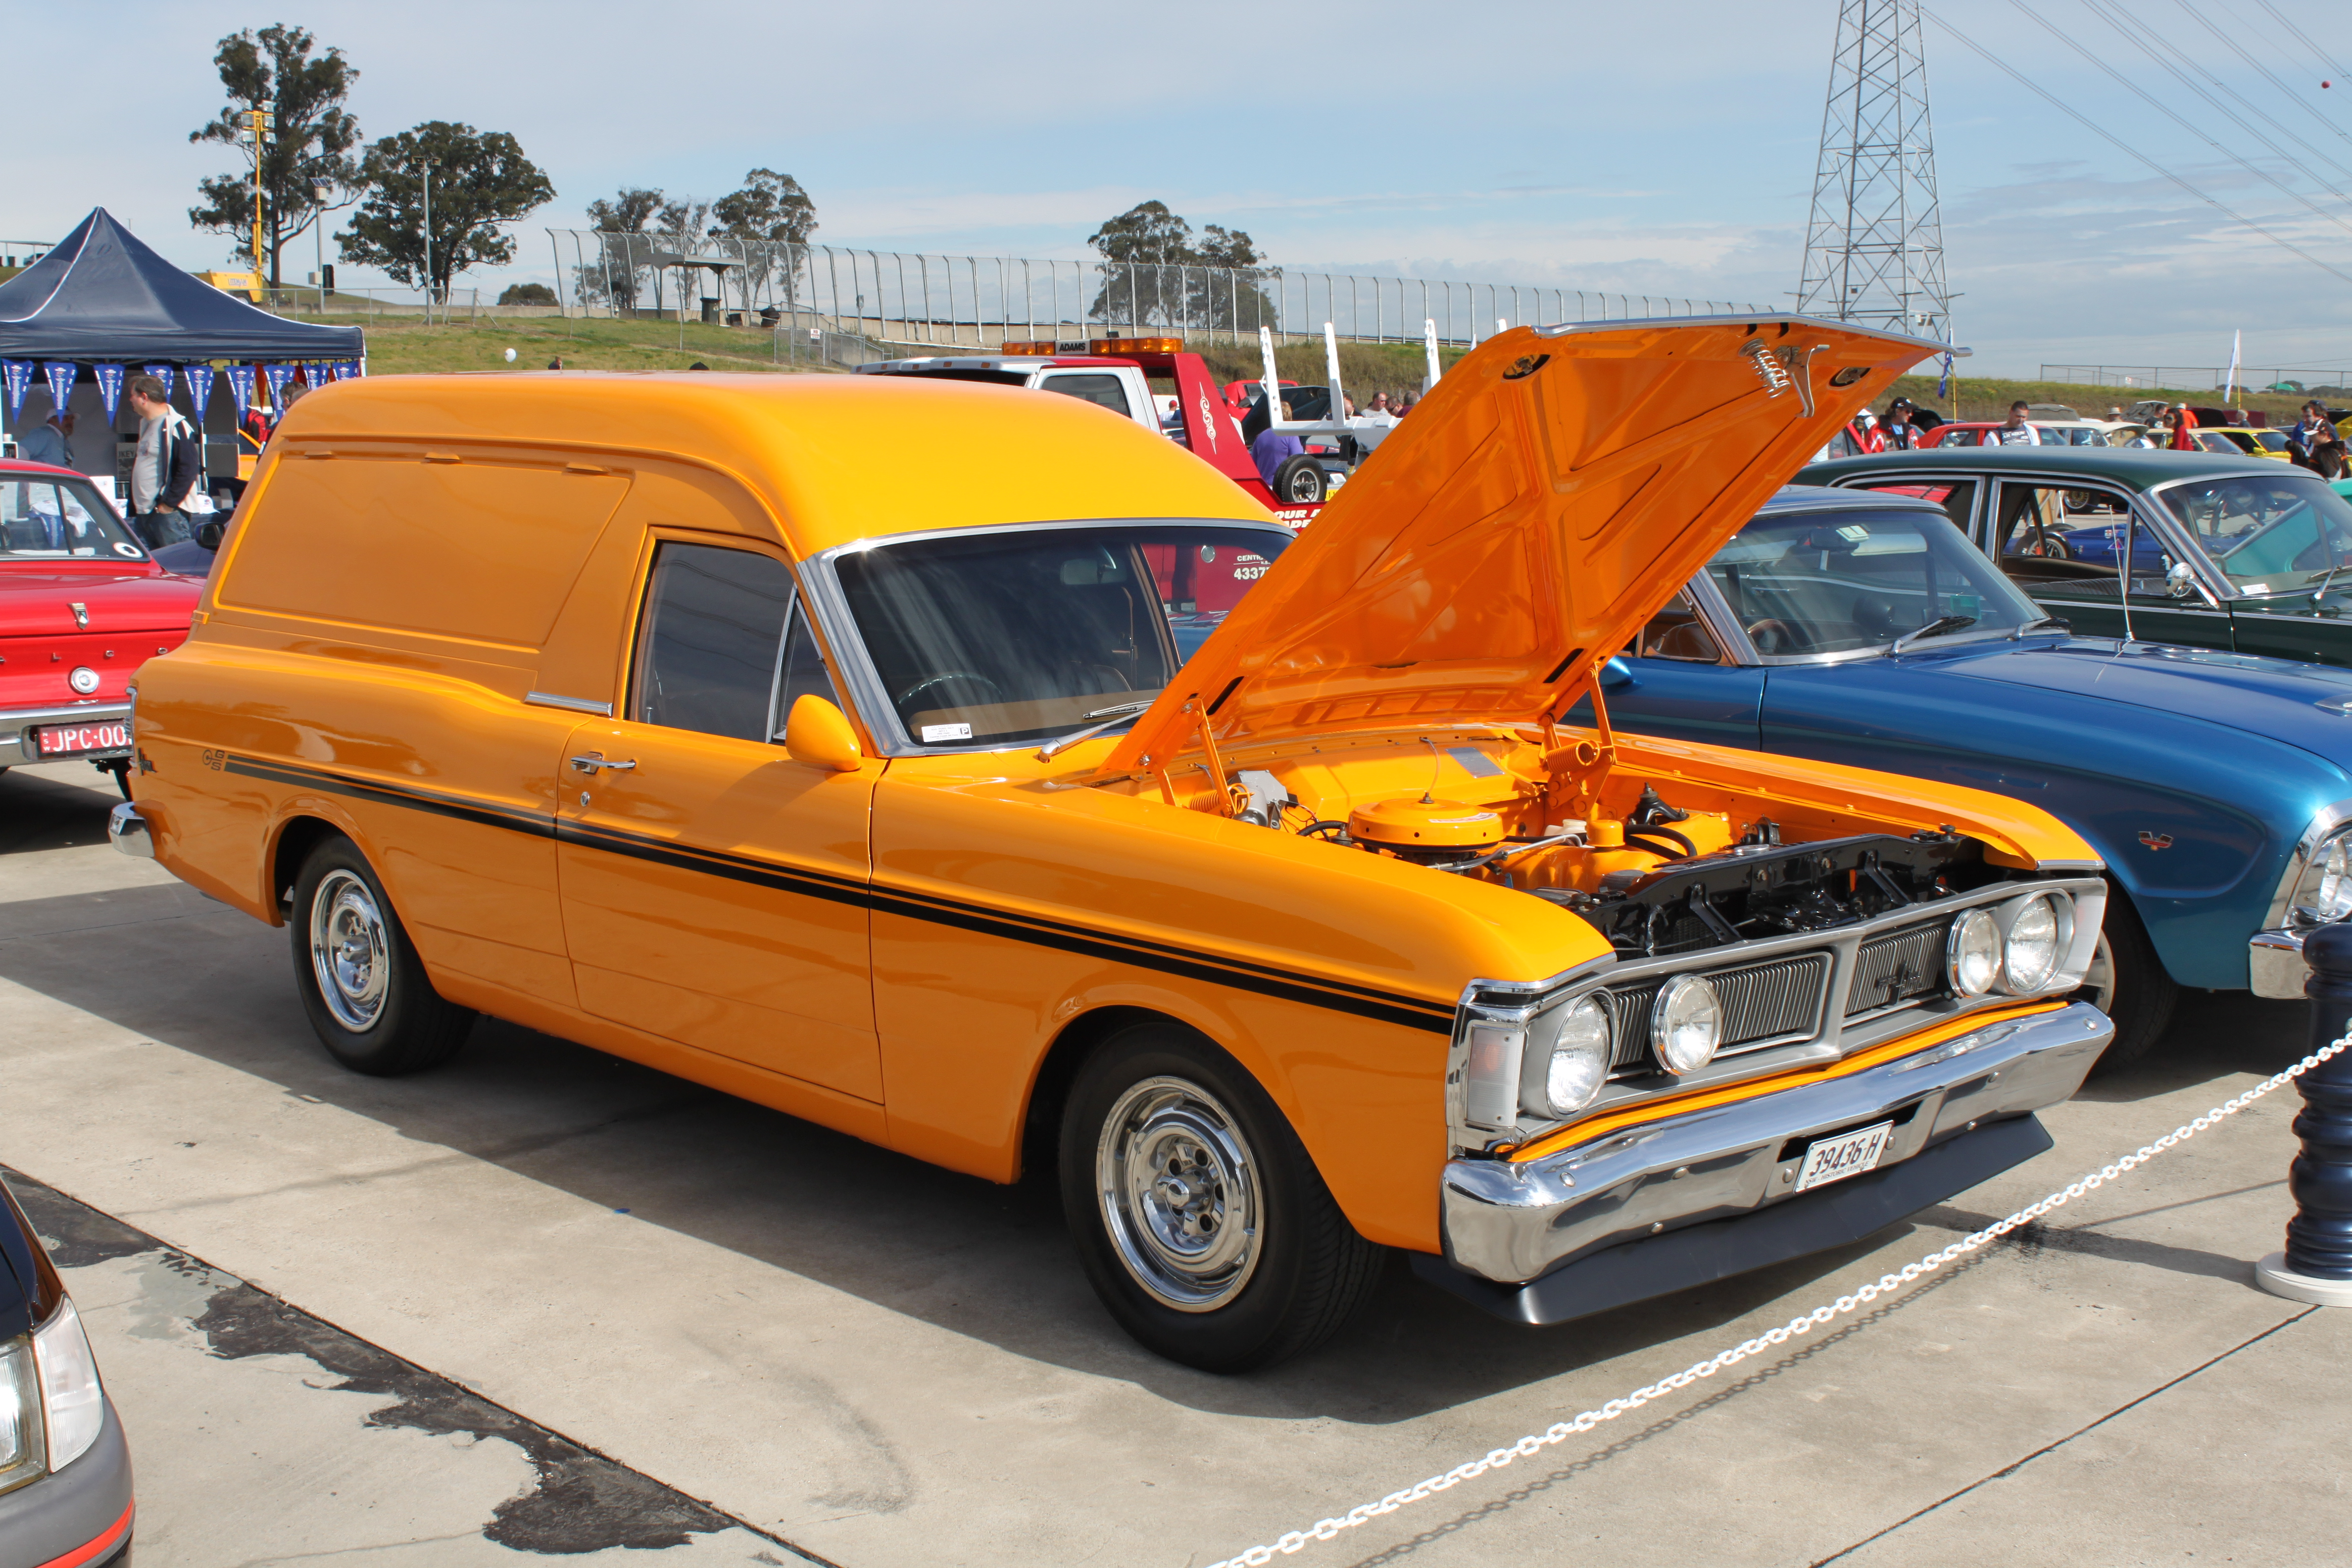 Xy4wd2 as well Poll Fords Iconic Falcon Race Car in addition Ford Xb Falcon Gt 351 Coupe likewise File Ford Falcon XY Panel Van  15213295263 likewise Liqui Moly Masters Contenders. on ford xy falcon